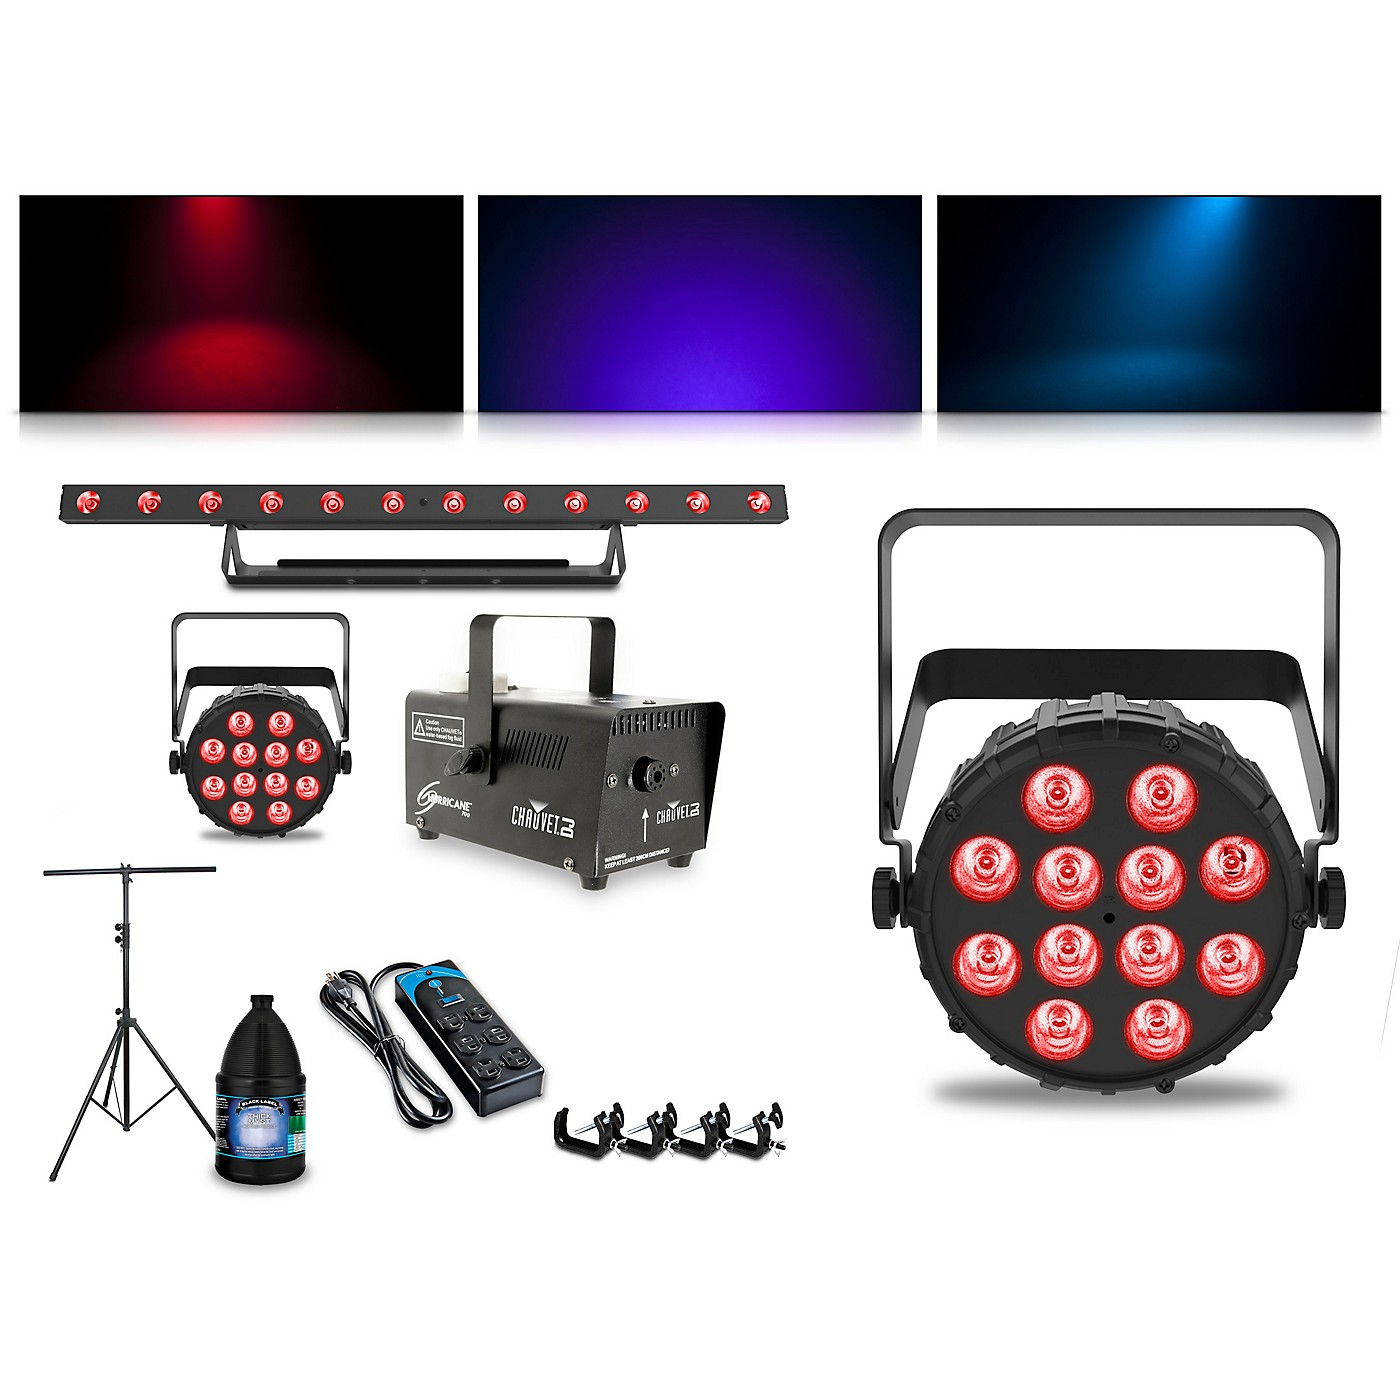 CHAUVET DJ Complete Lighting Package with Two SlimPAR T12 BT, ColorBAND T3 BT and Hurricane 700 Fog Machine thumbnail